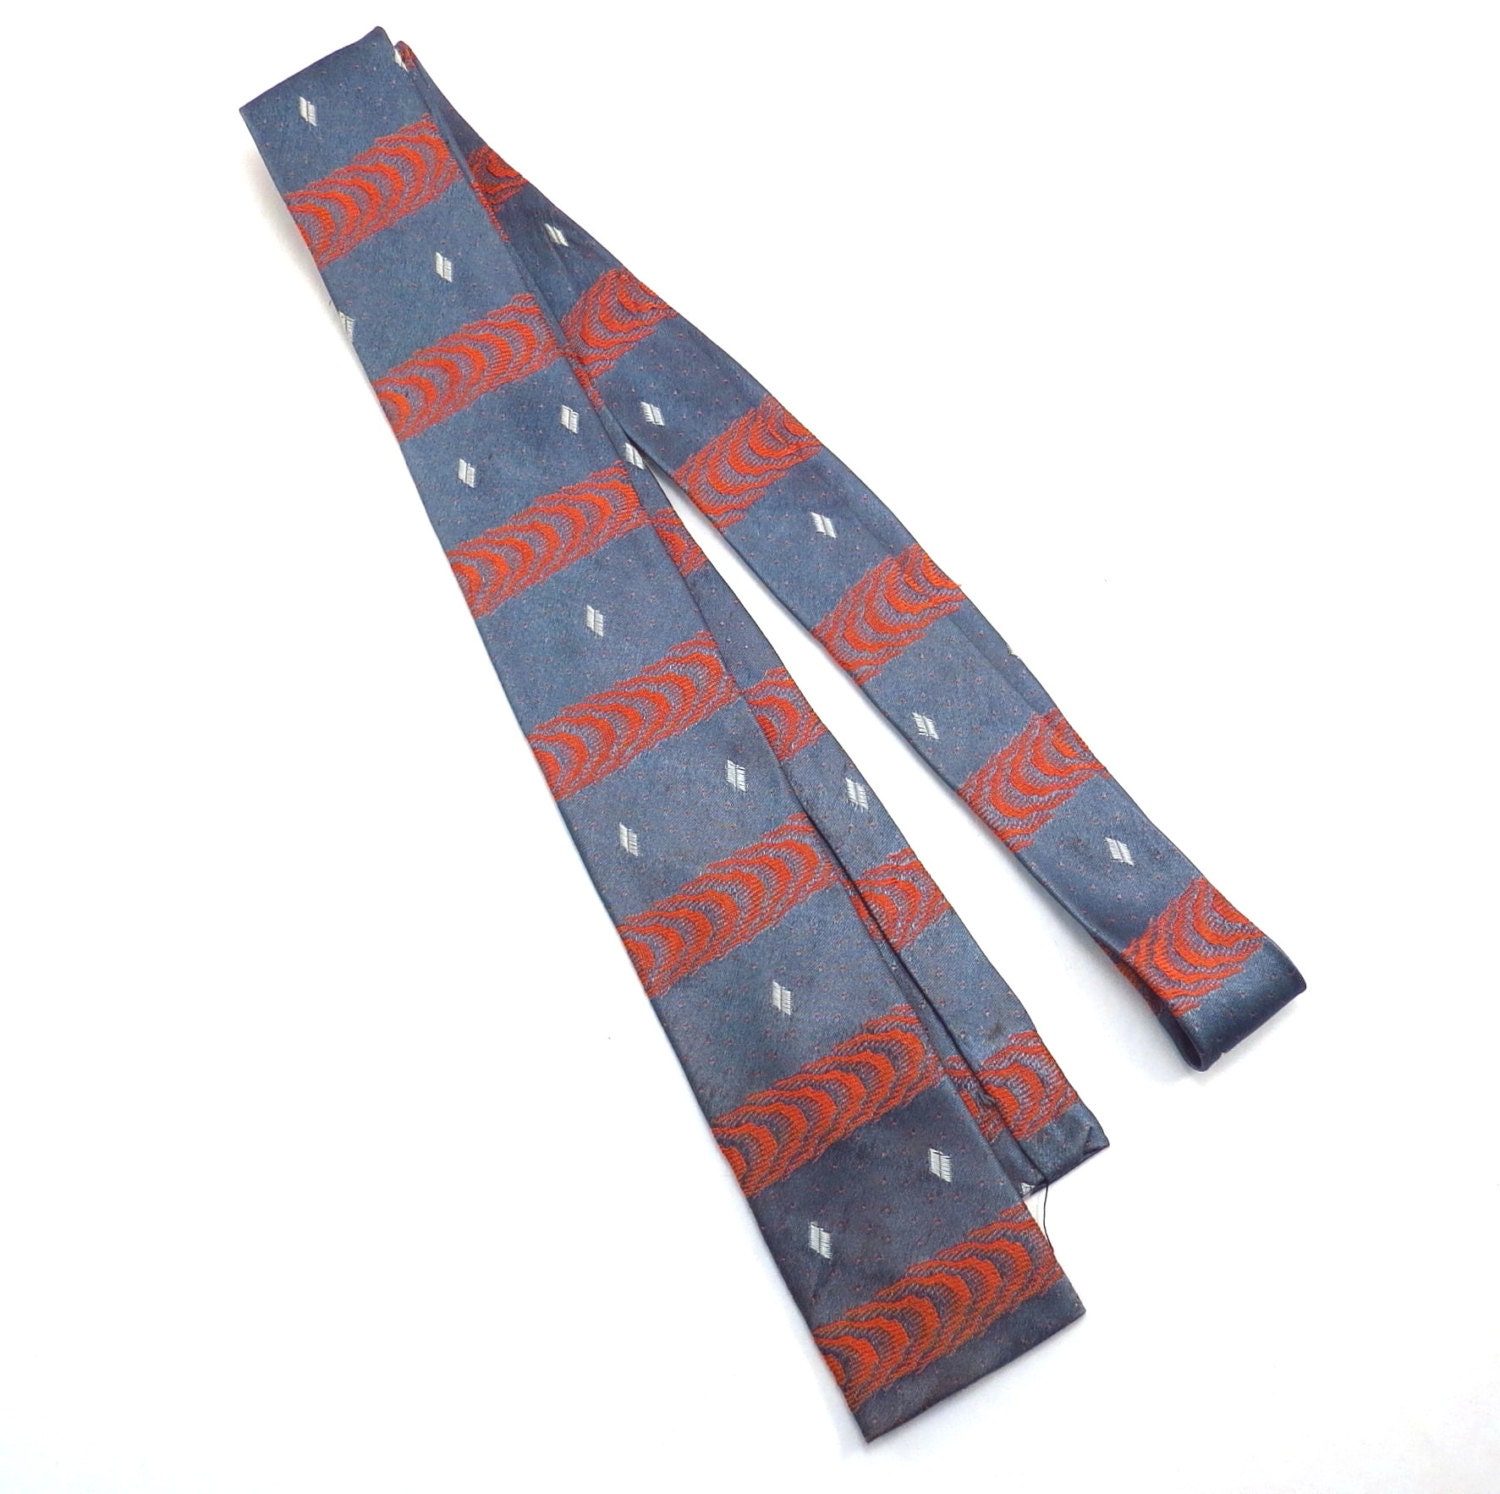 wembley silver and pink vintage tie 1960s square end pattern